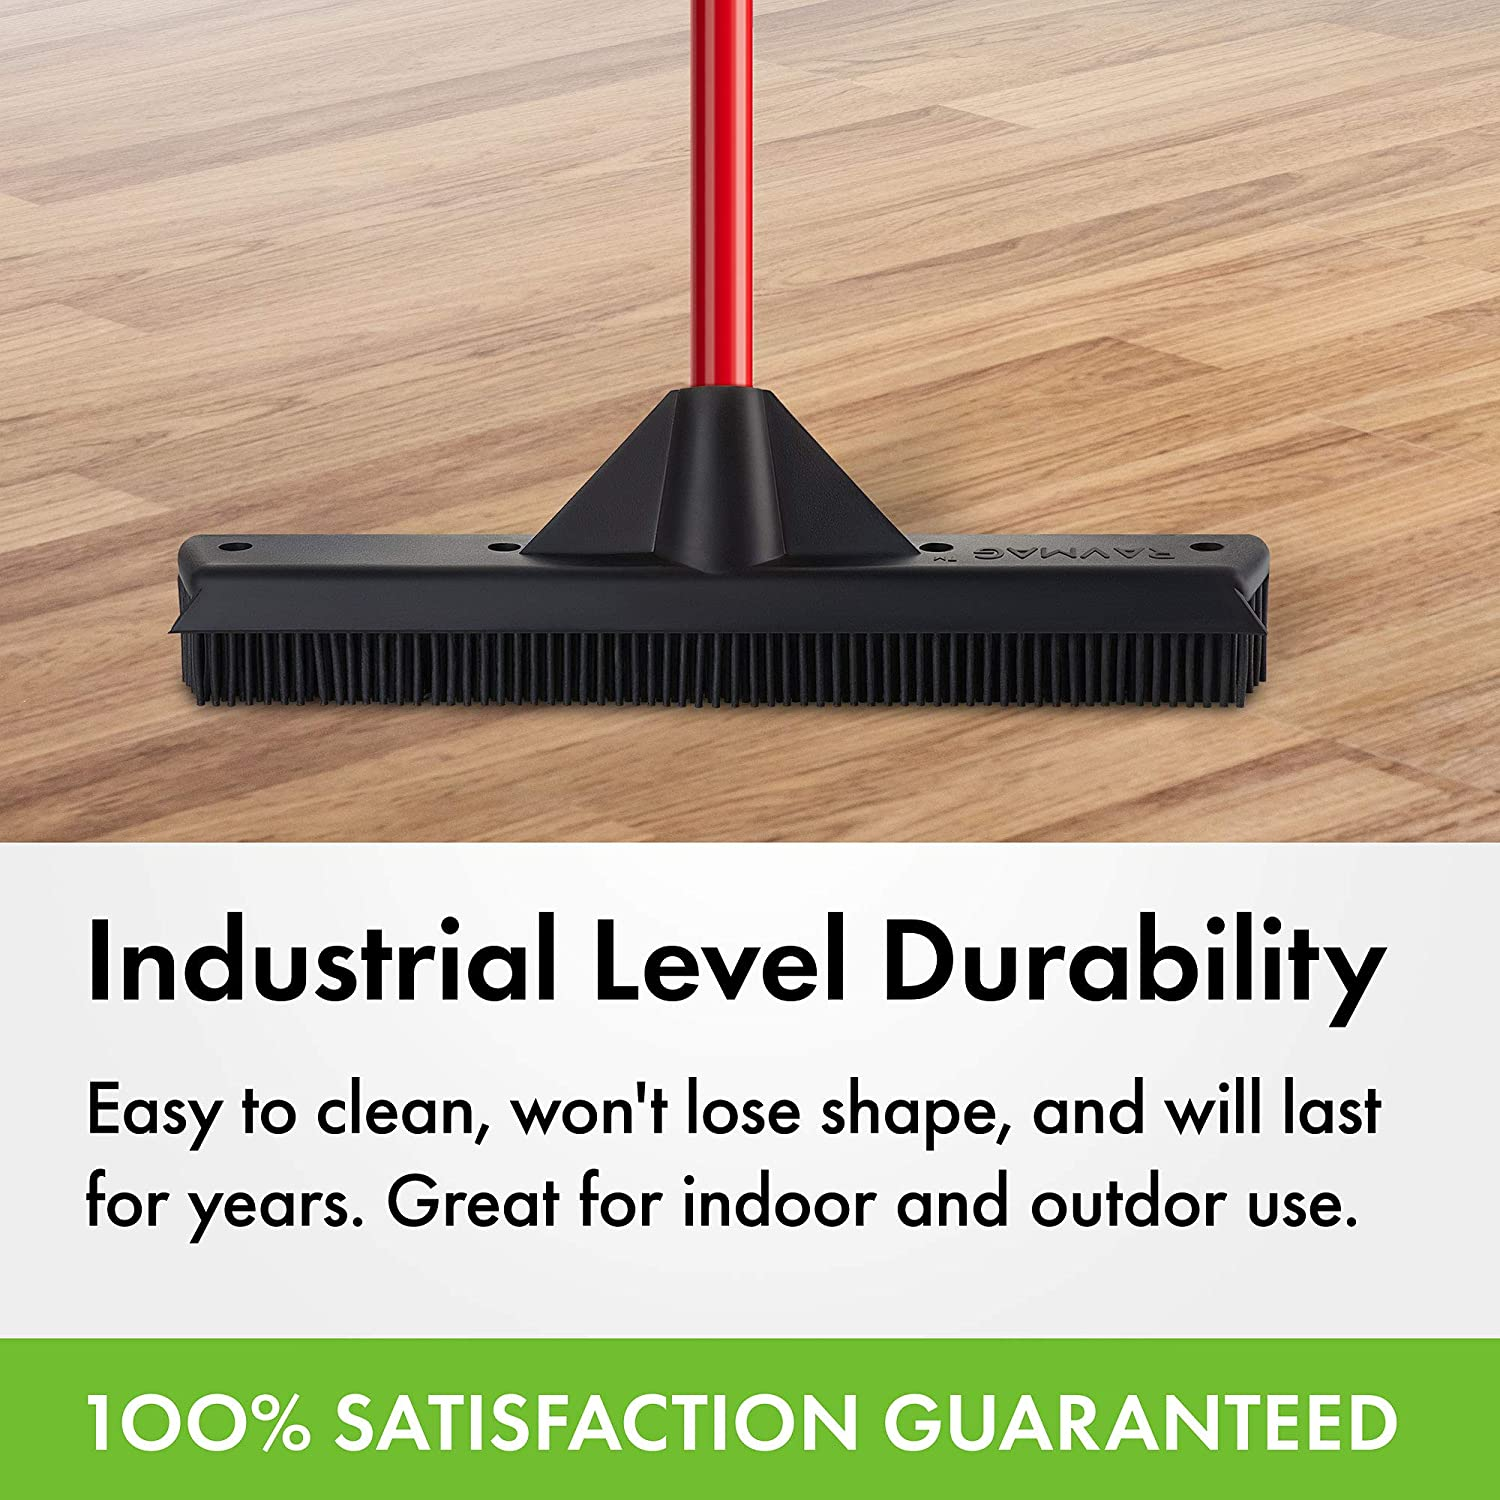 100/% Natural Rubber Bristles Design Decks /& windows For Indoor /& Outdoor Use For Pet /& Human Hair Hardwood Floors Rubber Broom /& Squeegee 33CM Cleans Carpets Water Resistant /& Washable